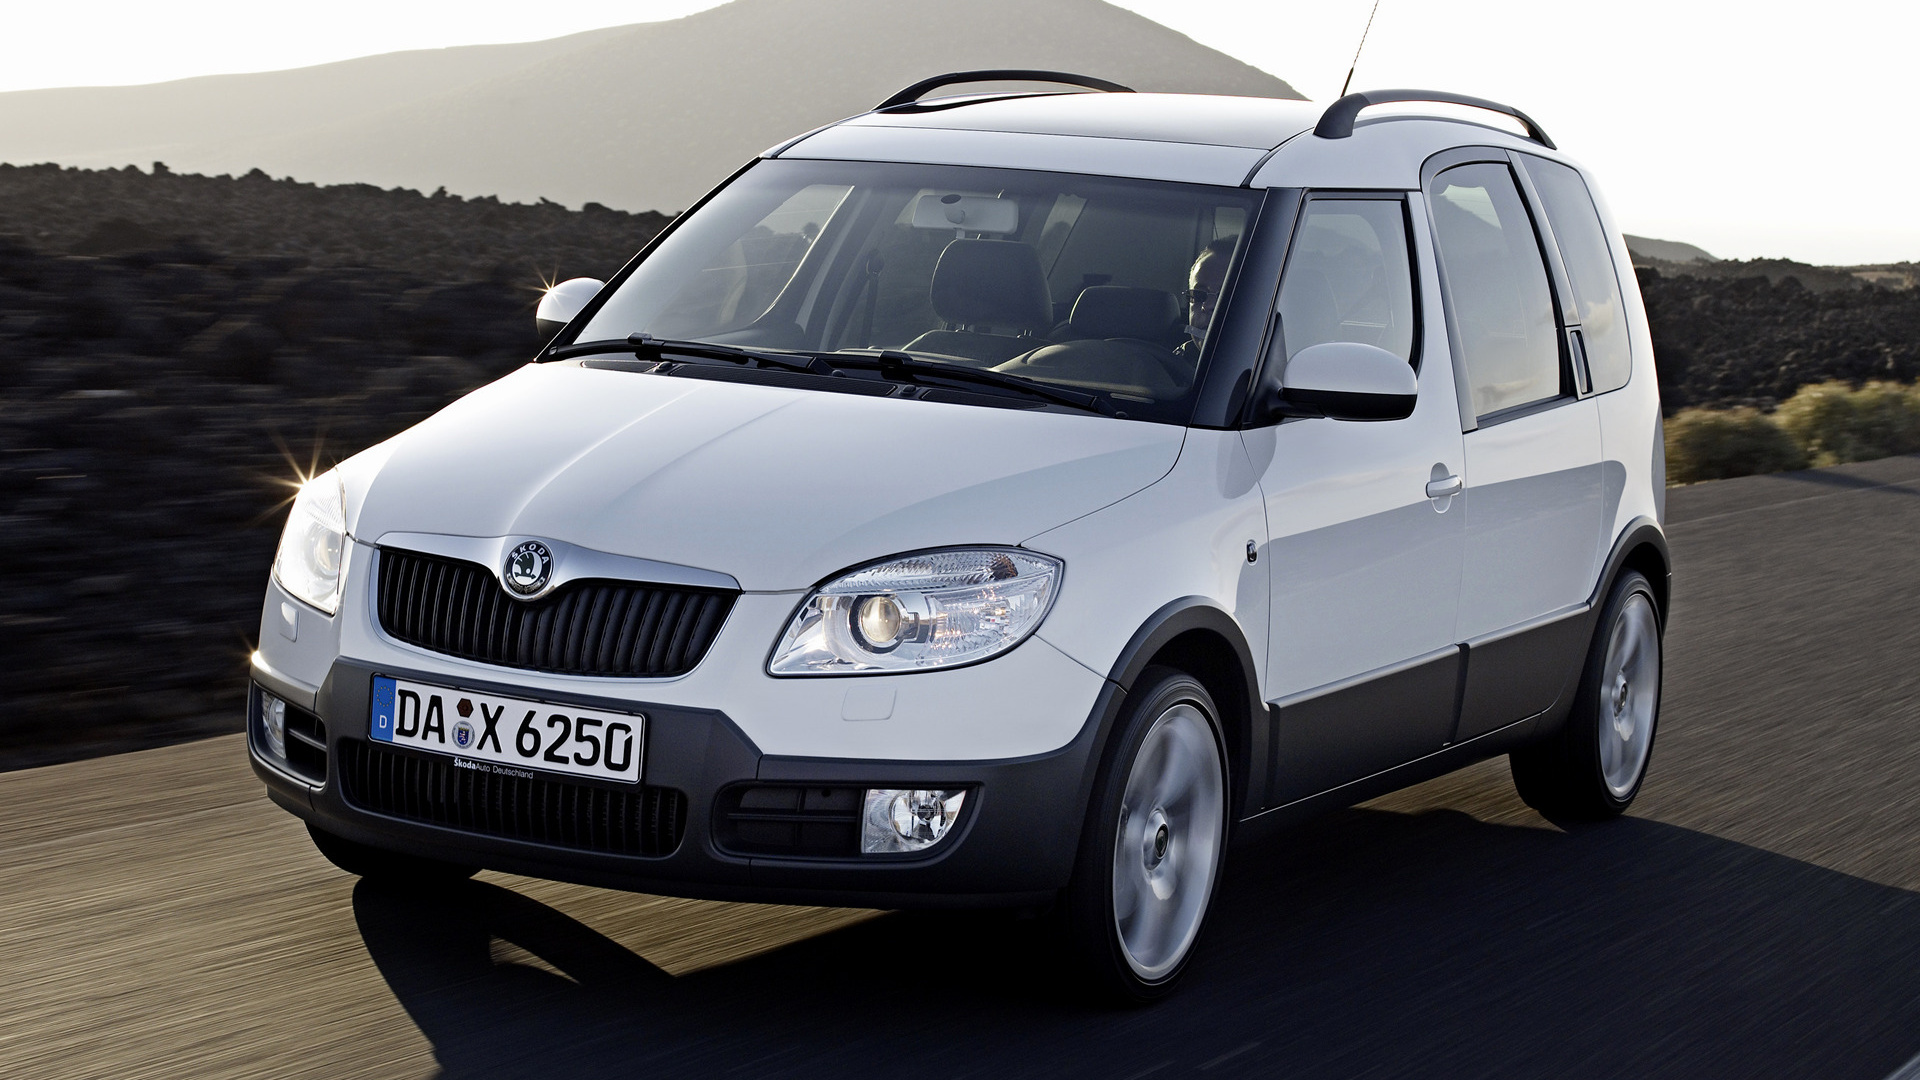 skoda roomster scout 2007 wallpapers and hd images car. Black Bedroom Furniture Sets. Home Design Ideas